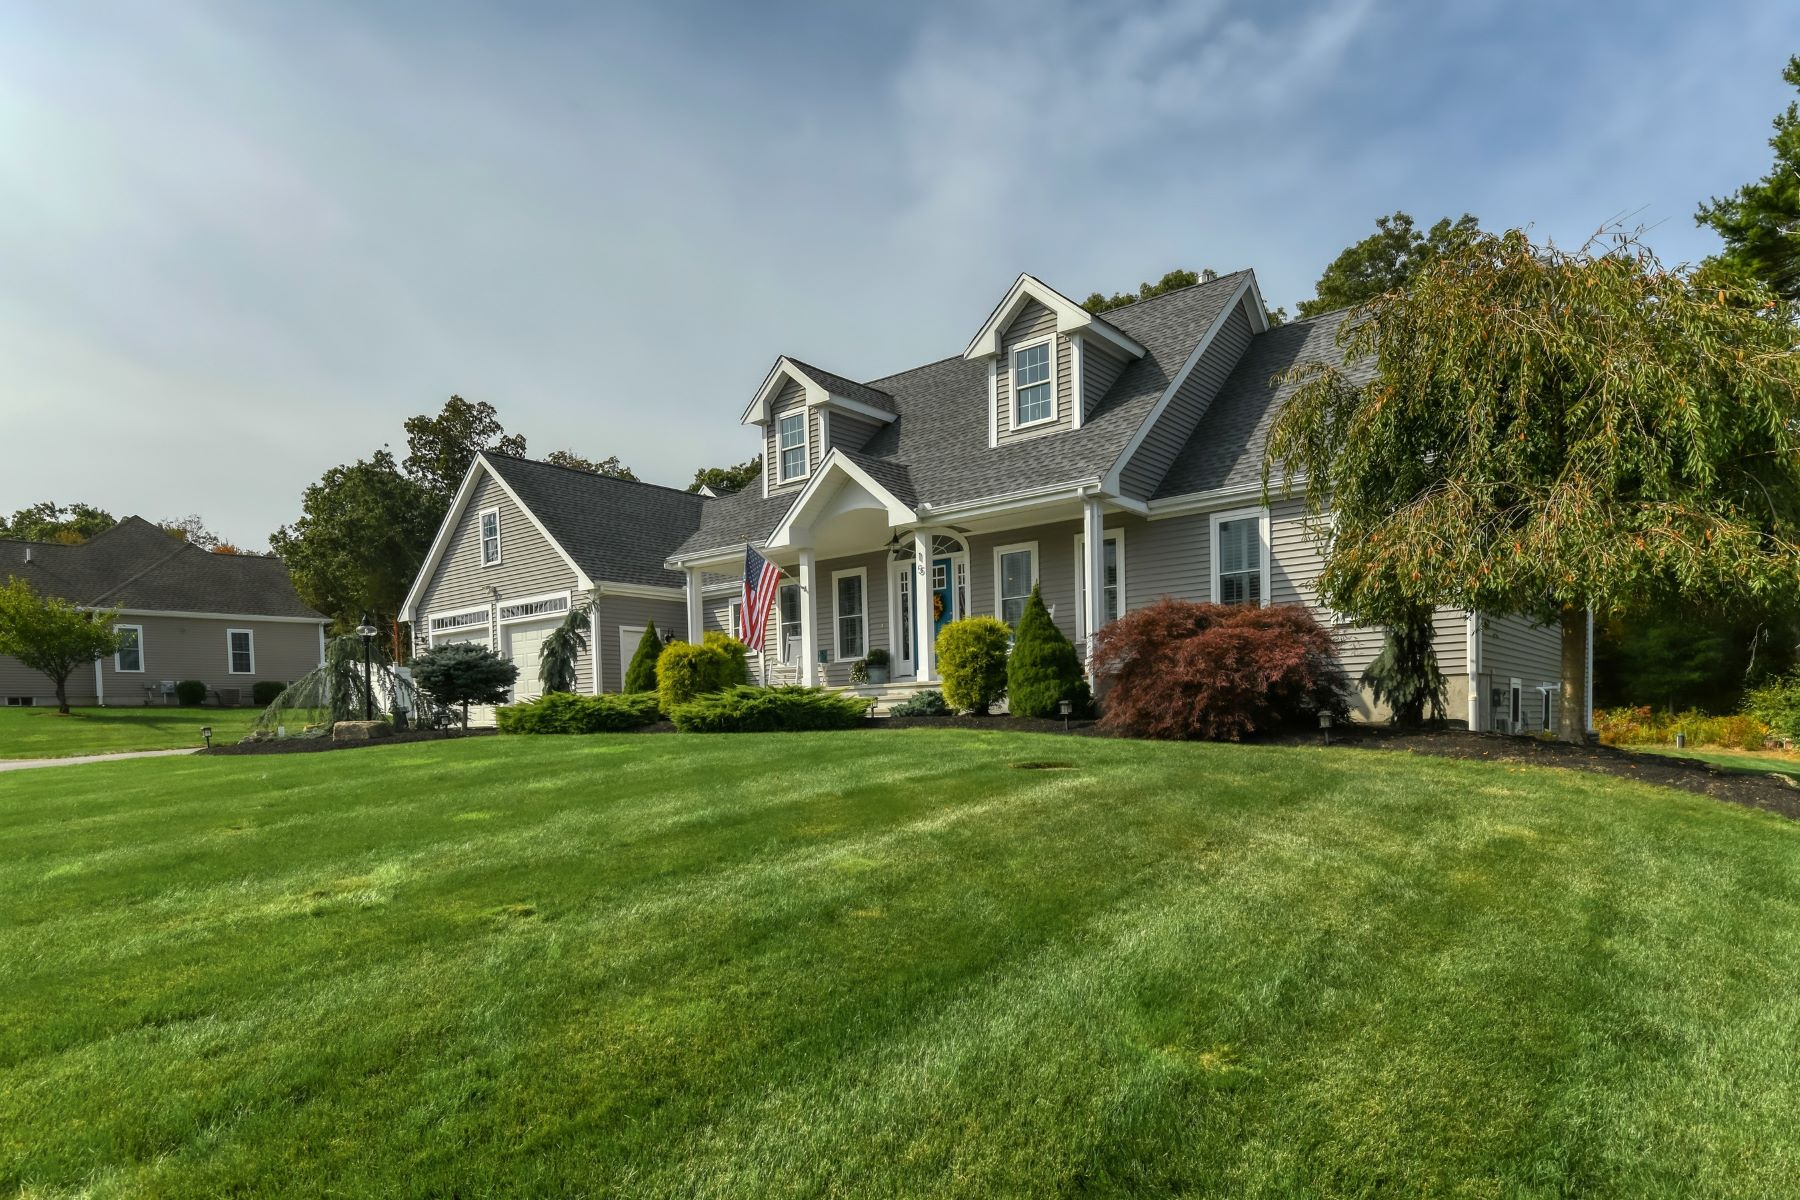 Single Family Homes for Sale at Custom Cape on Quiet Cul-de-sac 15 Stella Lane Westport, Massachusetts 02790 United States